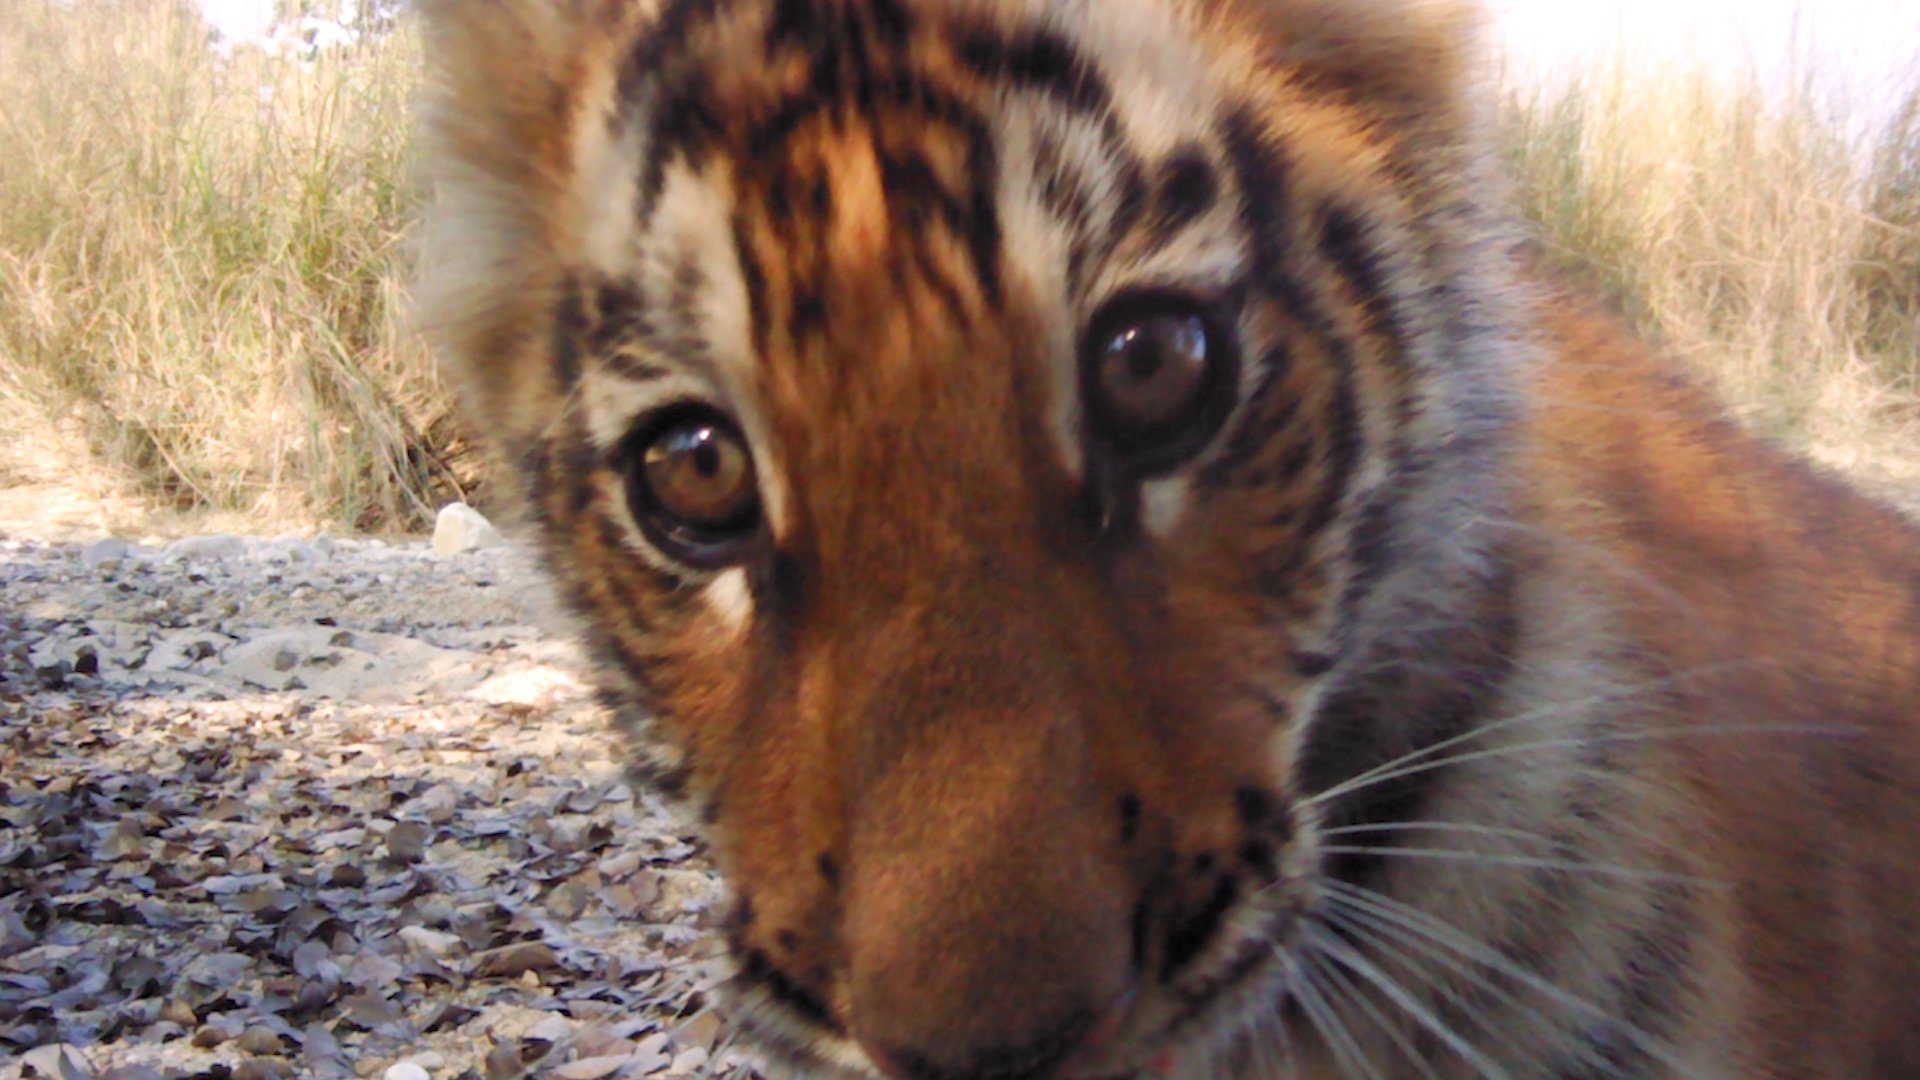 The tiger population in Nepal is doing very well thanks to an excellent conservation 'recipe' https://t.co/MibZ6WDRti